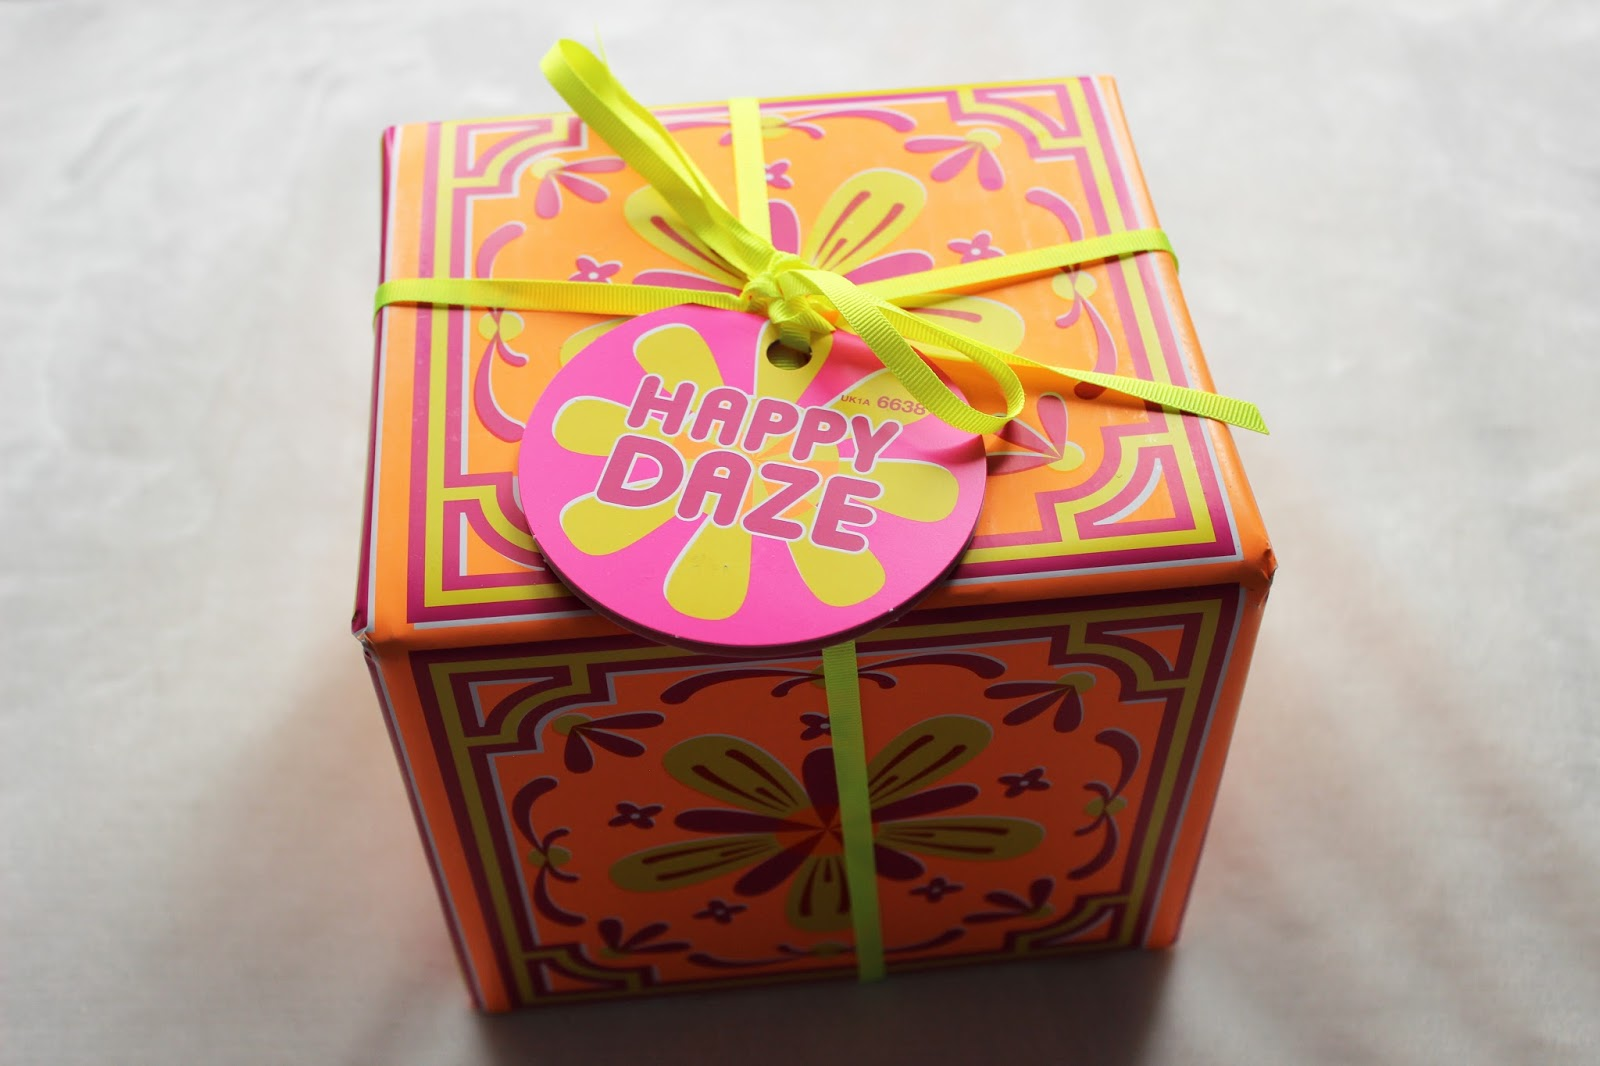 LUSH Happy Daze Gift Box